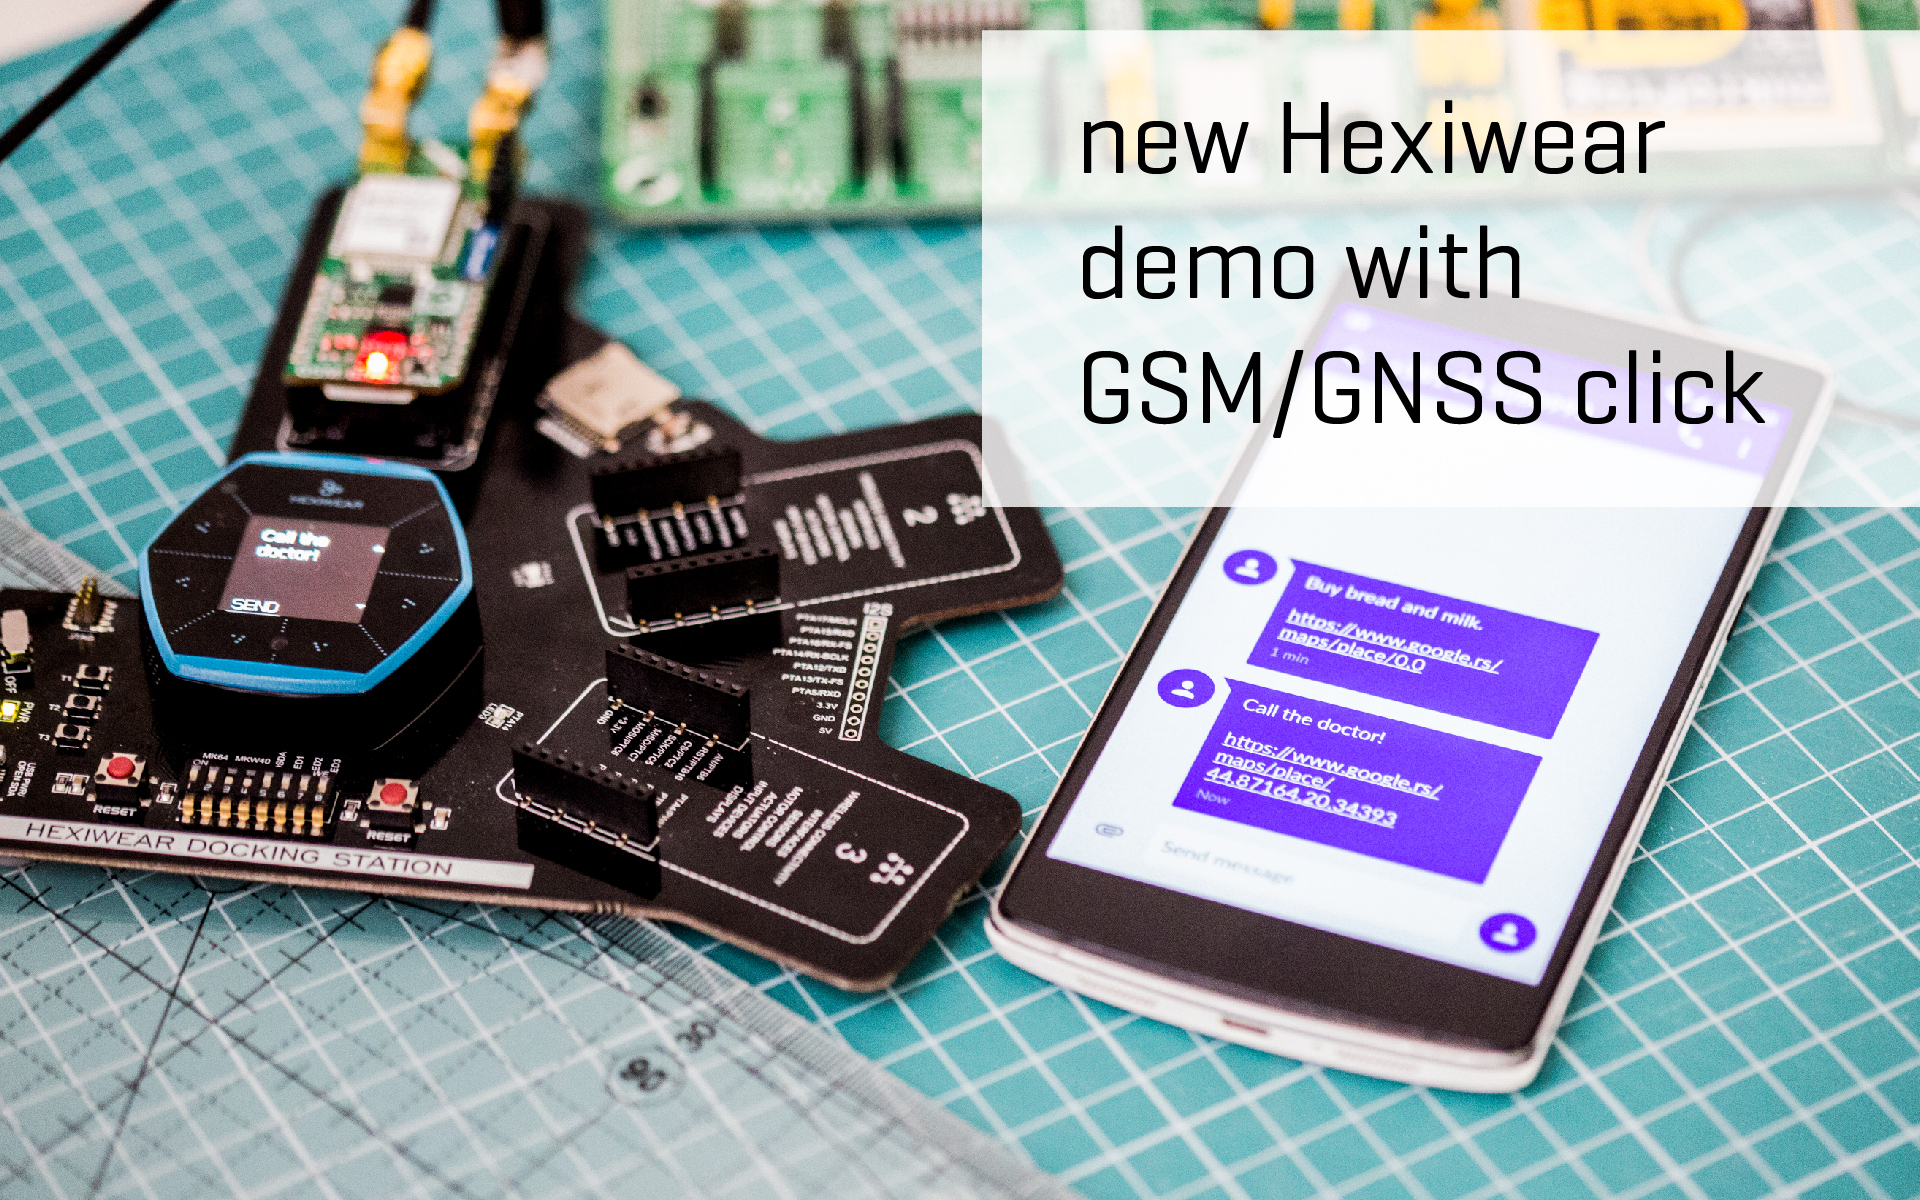 New Hexiwear demo with GSM/GNSS click